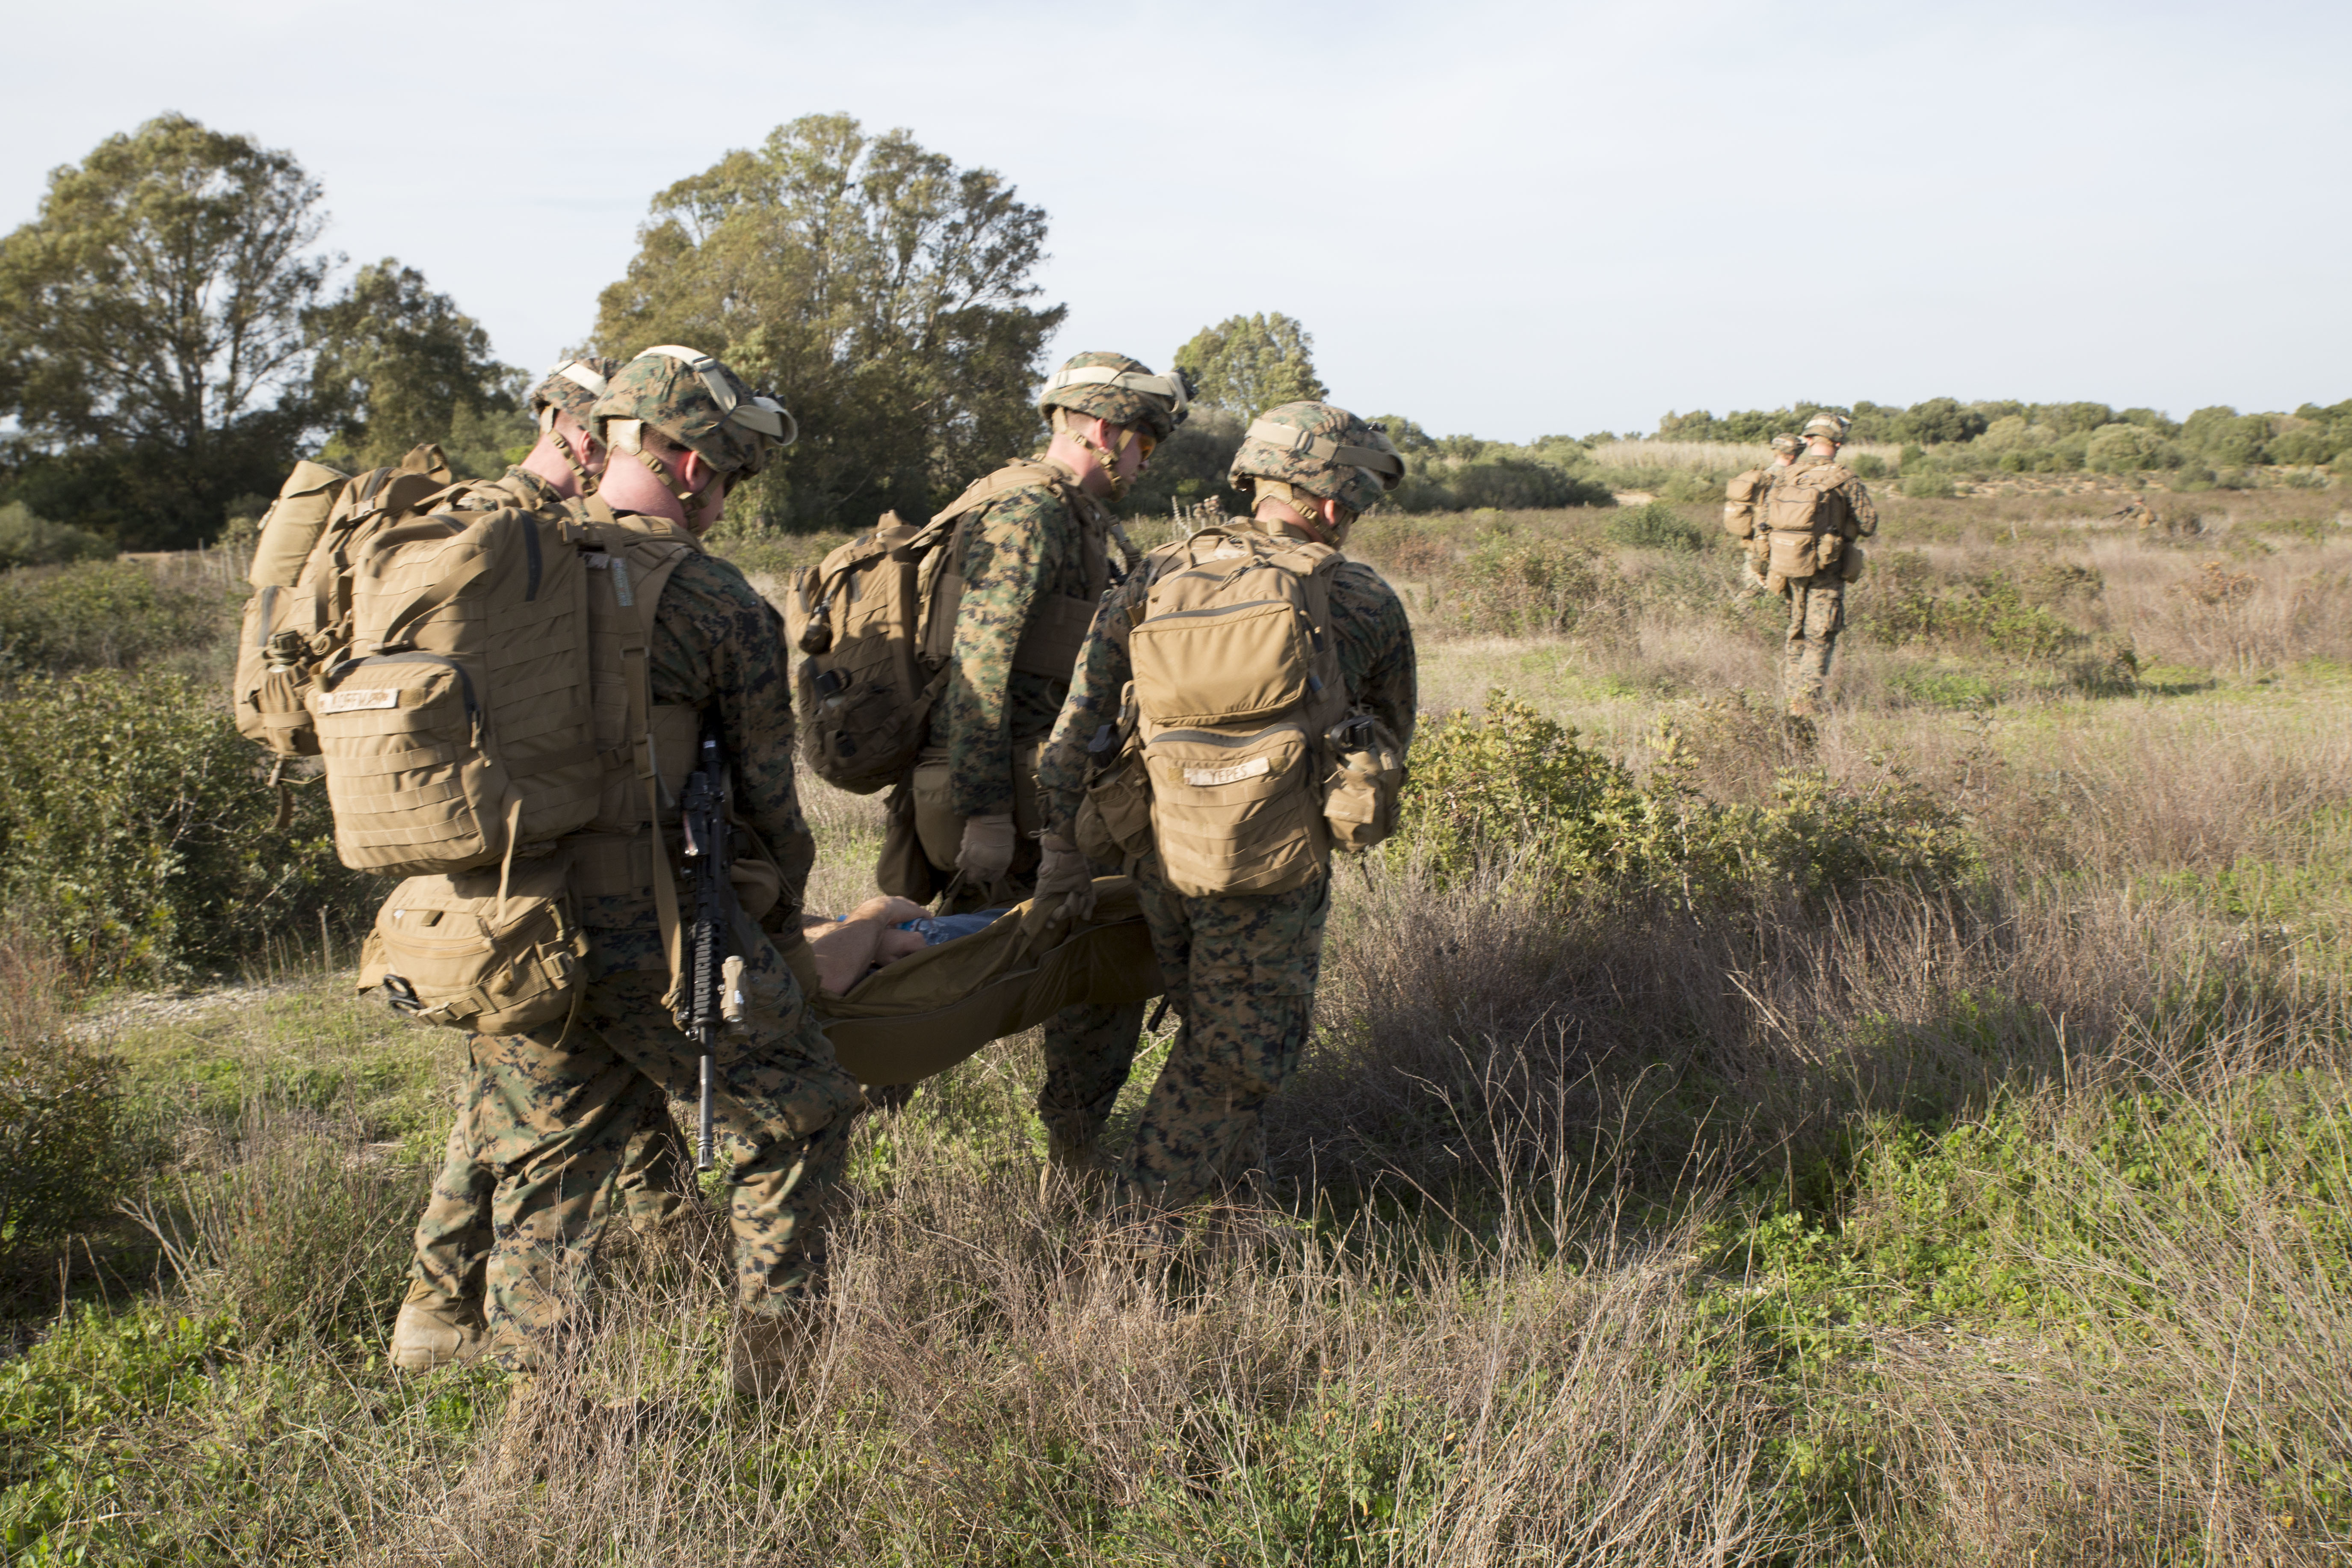 U.S. Marines with Special-Purpose Marine Air-Ground Task Force Crisis Response-Africa extract a simulated casualty during quick-response training aboard Naval Station Rota, Spain, January 23, 2016. The alert force tested the unit's capabilities by simulating the procedures of reacting to a time-constrained, crisis-response mission. (U.S. Marine Corps photo by Sgt. Tia Nagle)